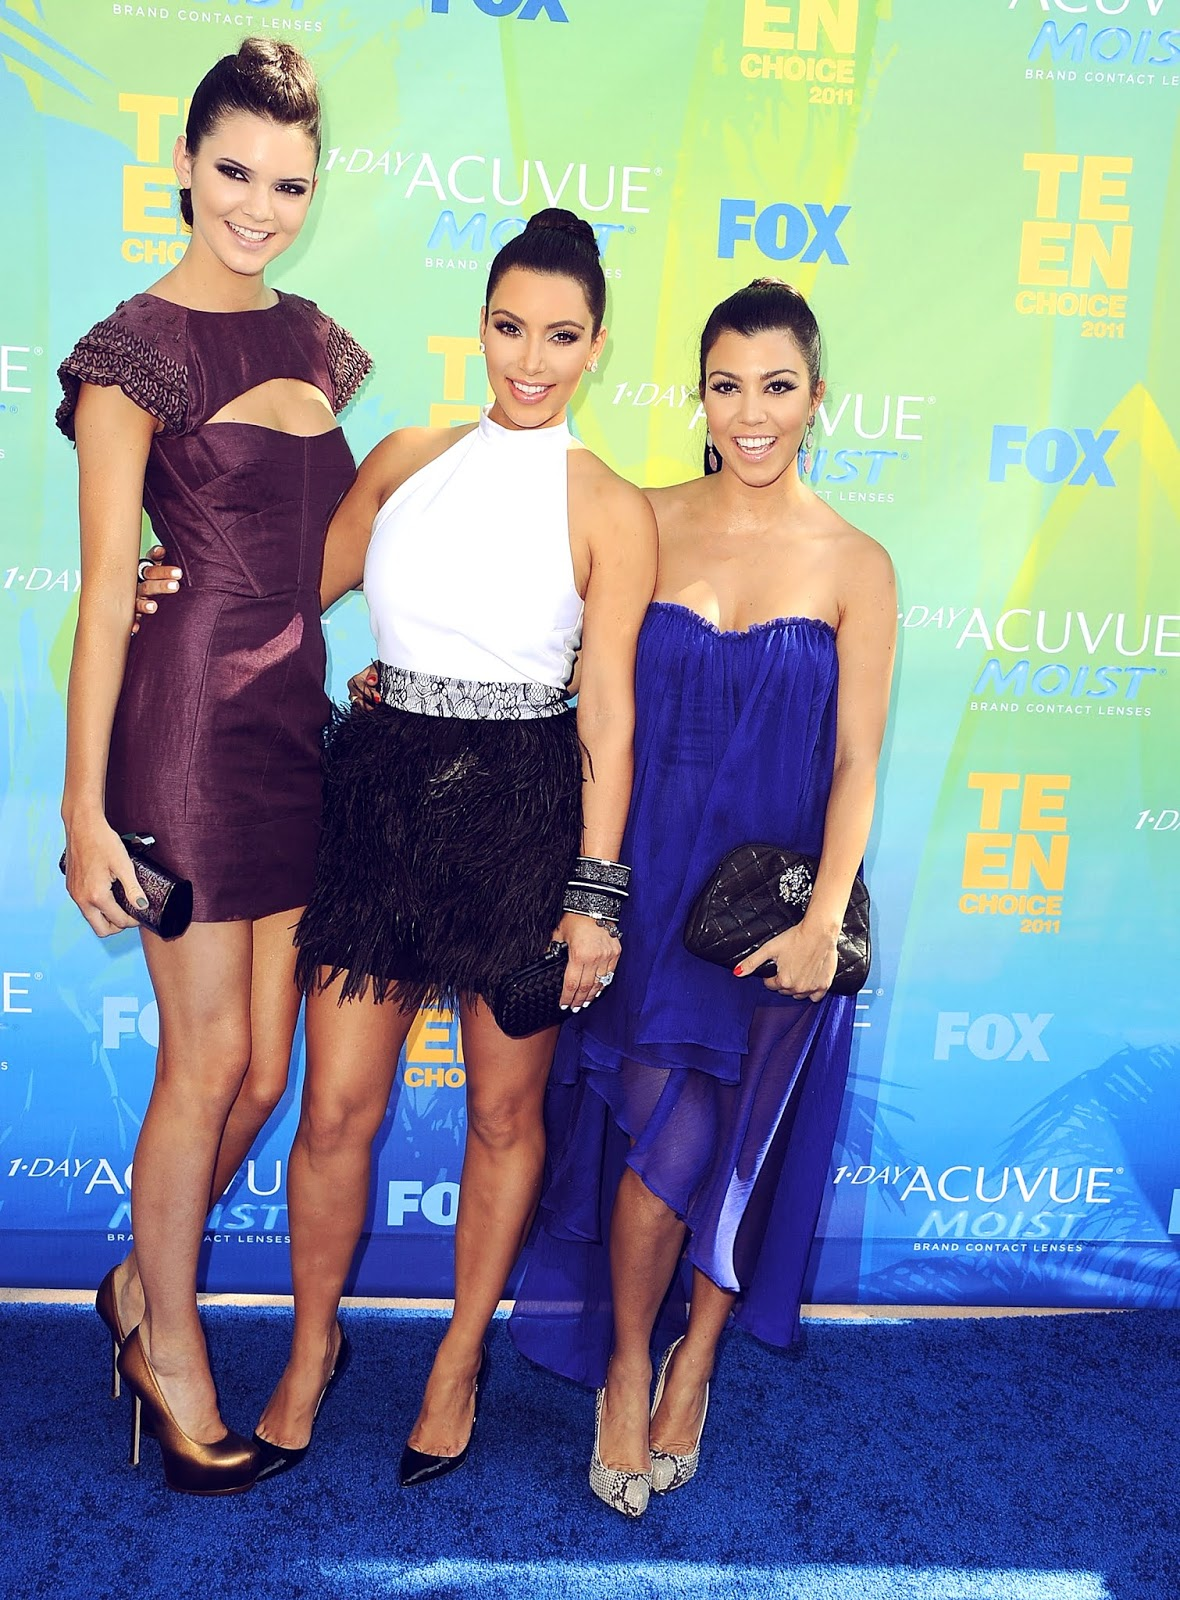 23 - Teen Choice Awards in August 11, 2011